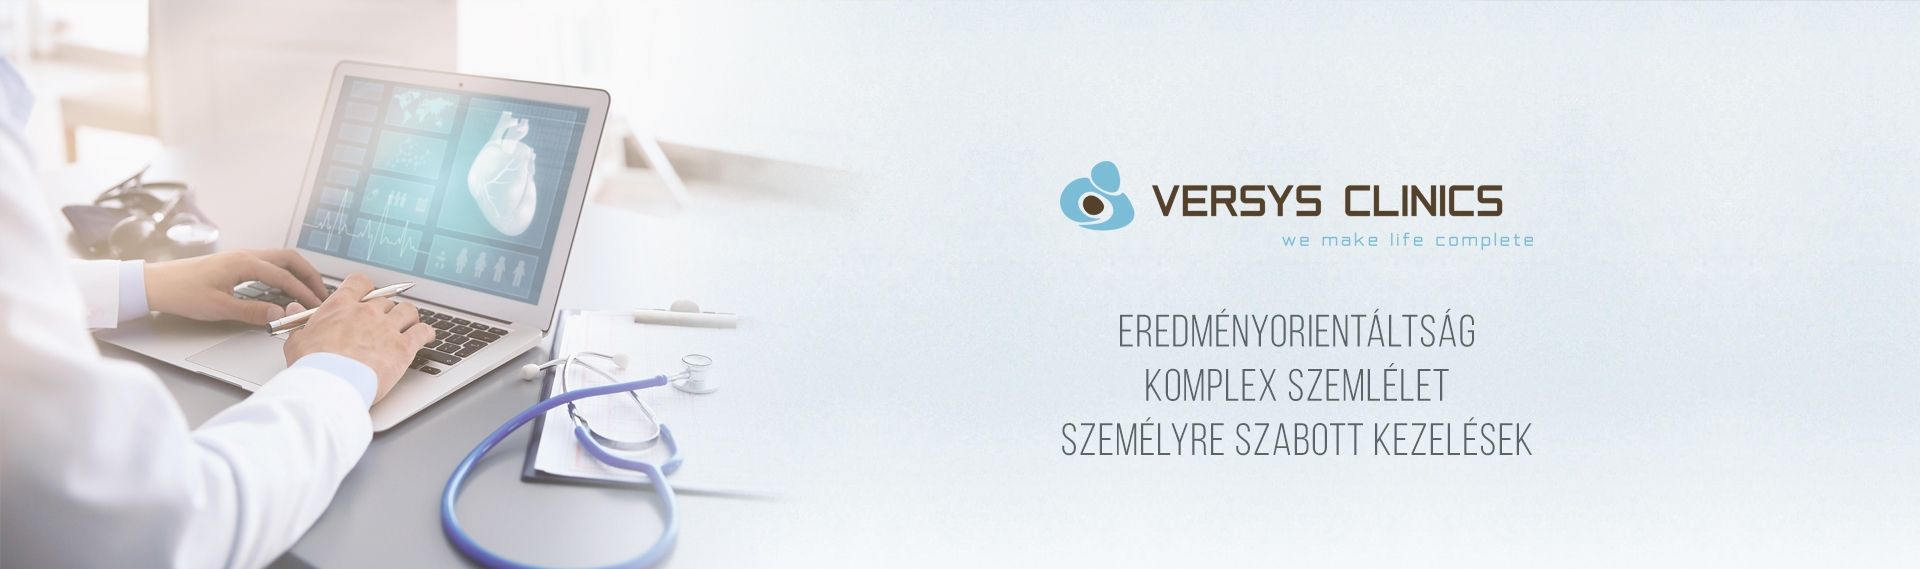 VERSYS CLINICS - CARDIOLOGY OUTPATIENT SPECIALITY DEPARTMENT (FOCUSING ON ATHLETES)